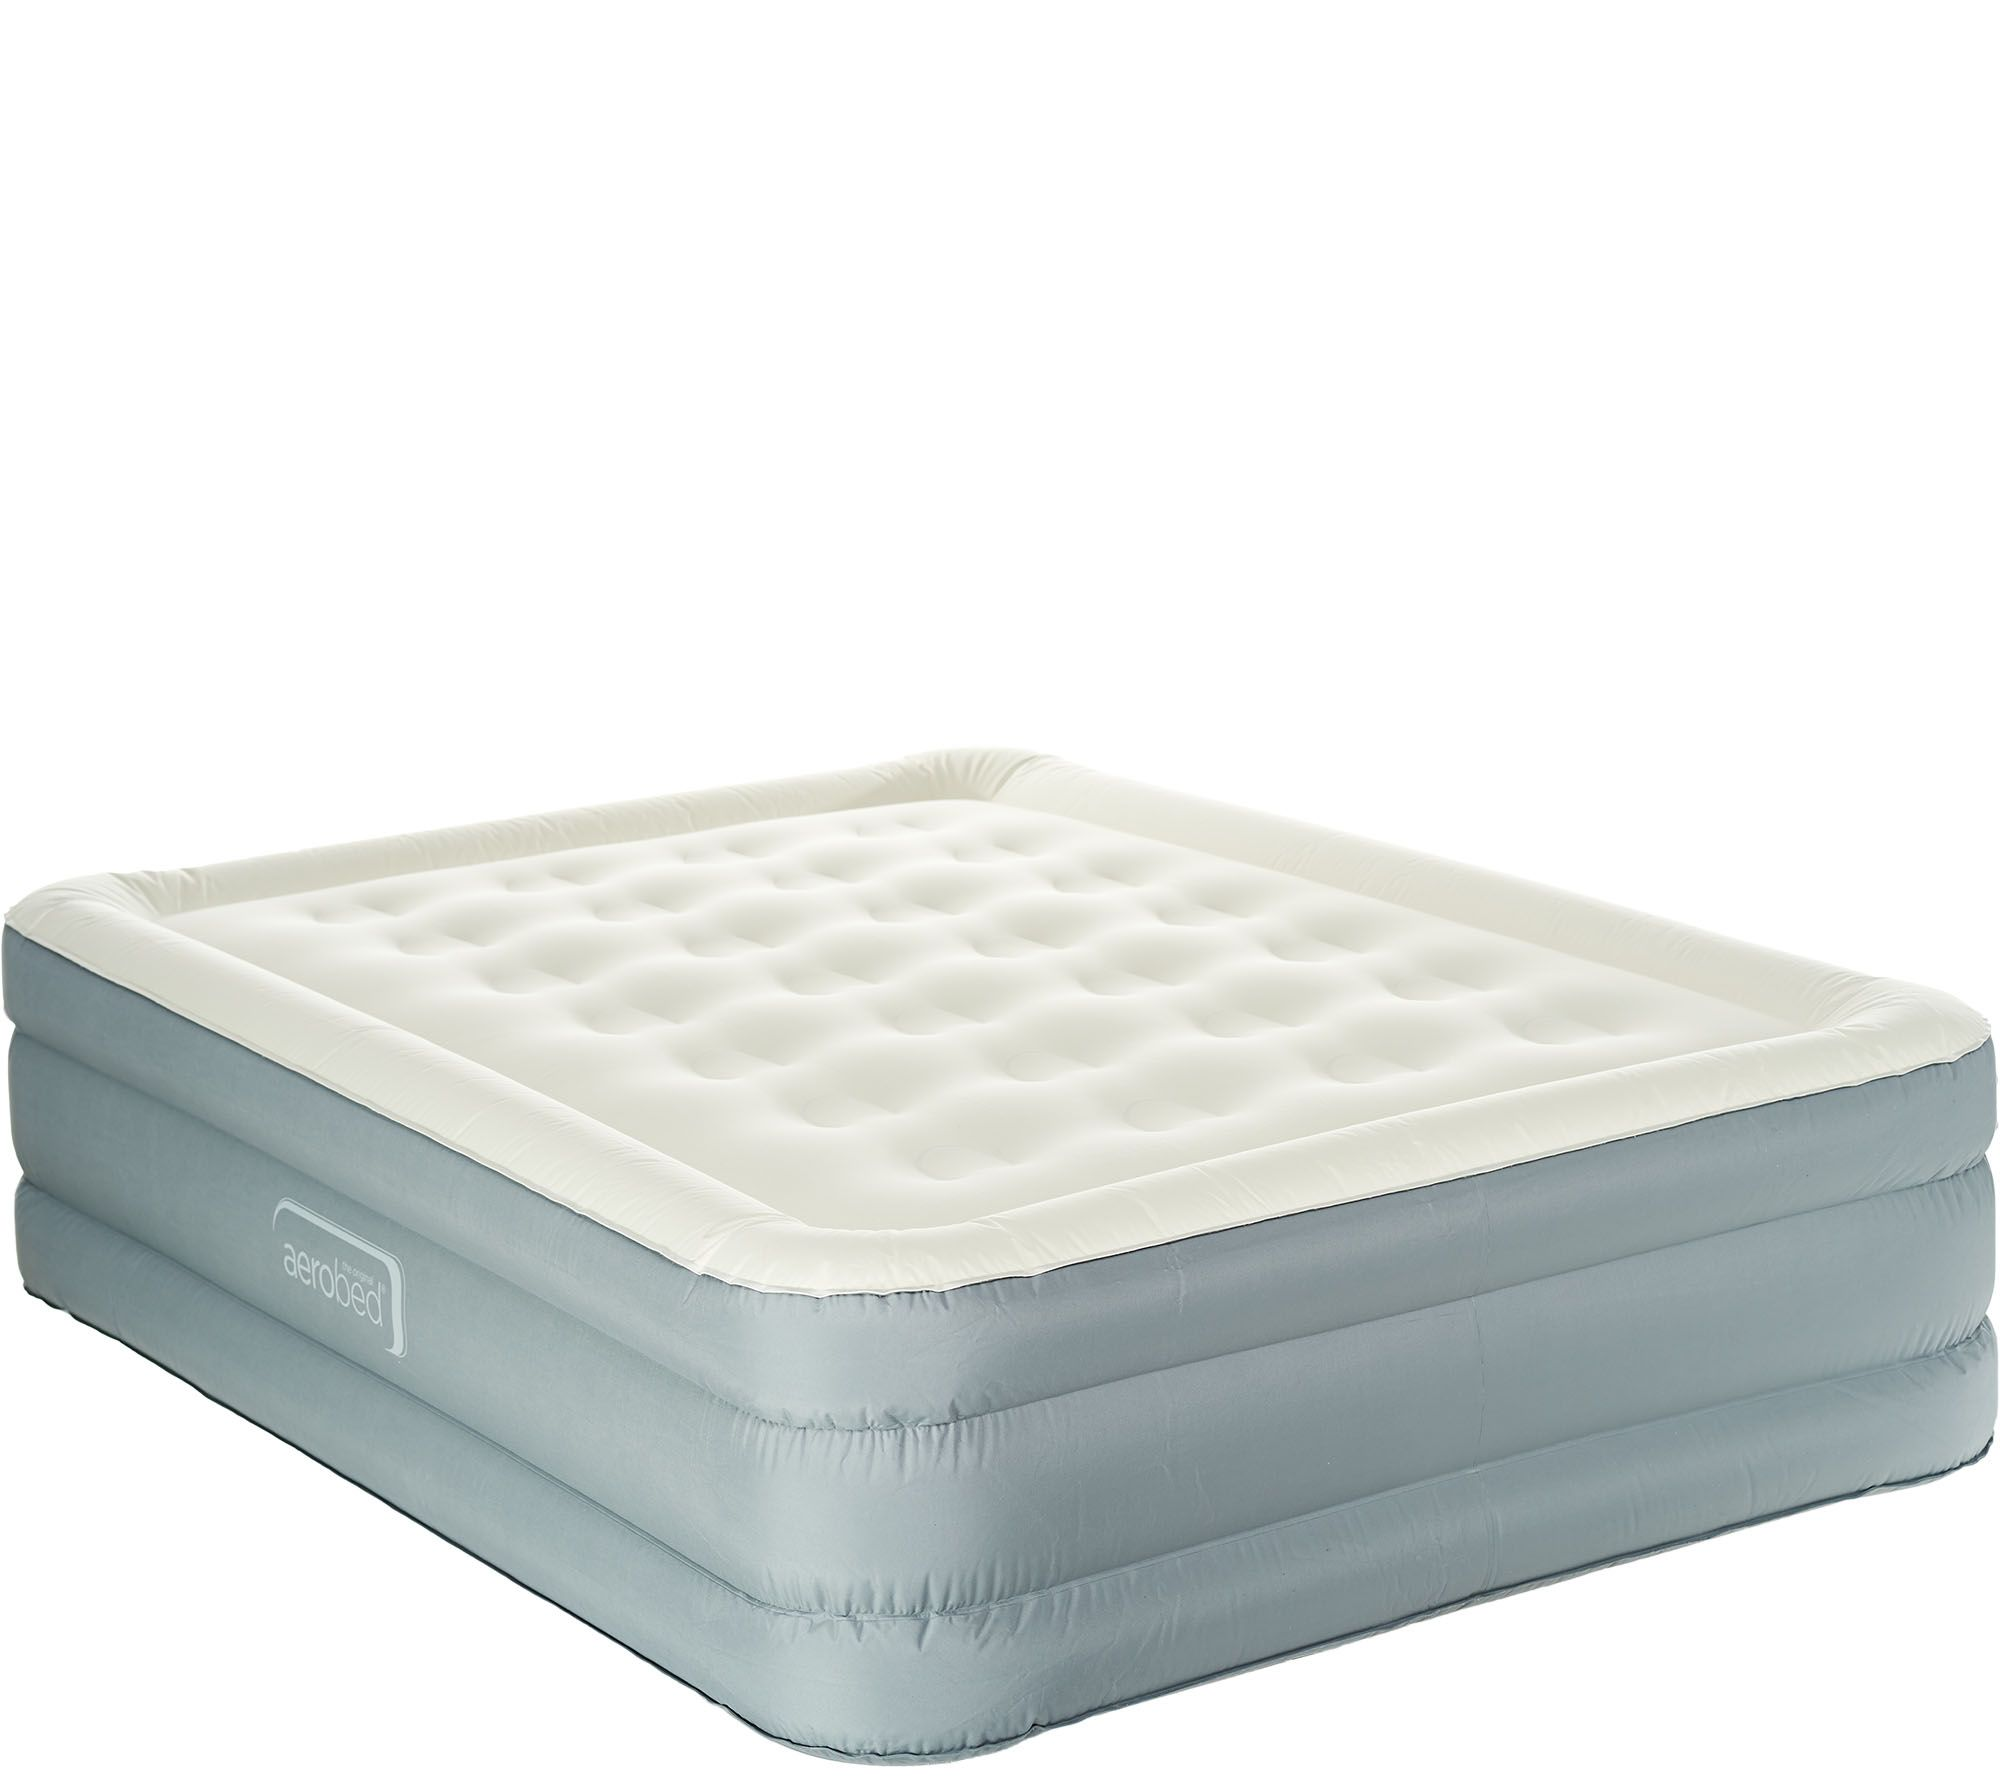 "Aerobed Twin 18"" fort Adjust Antimicrobial Air Mattress"